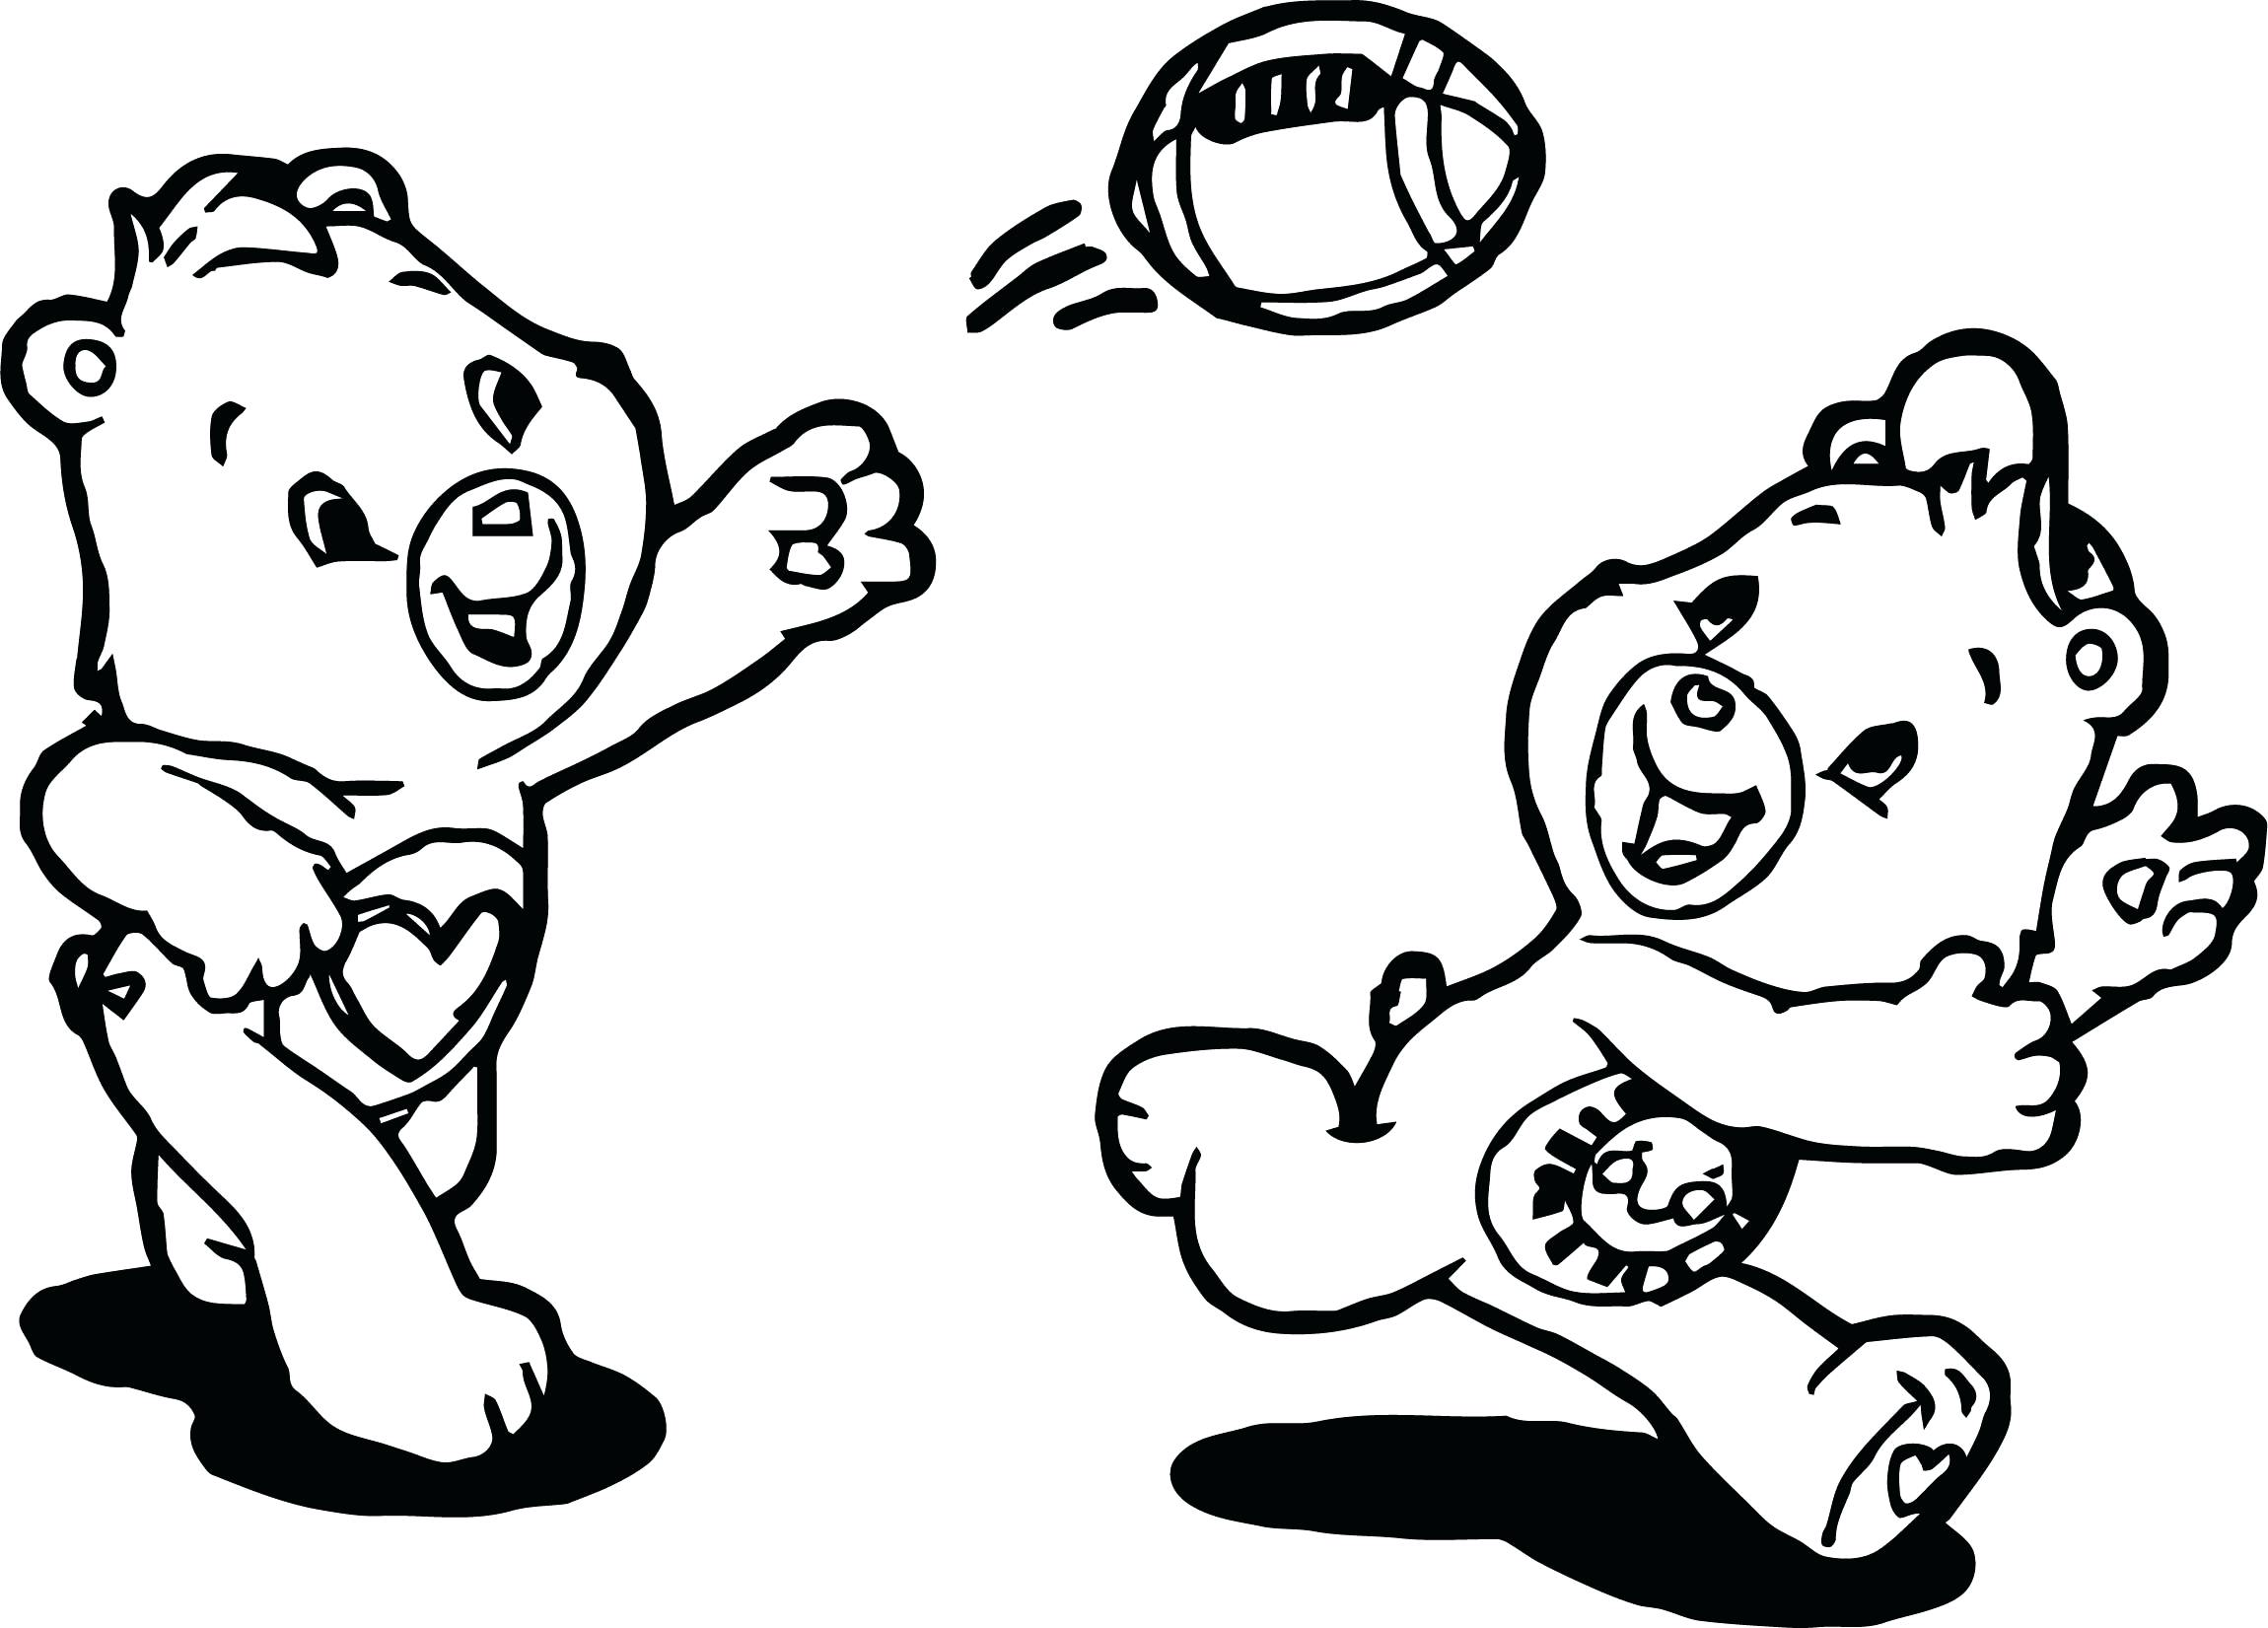 Physical Education Coloring Pages At Getcolorings